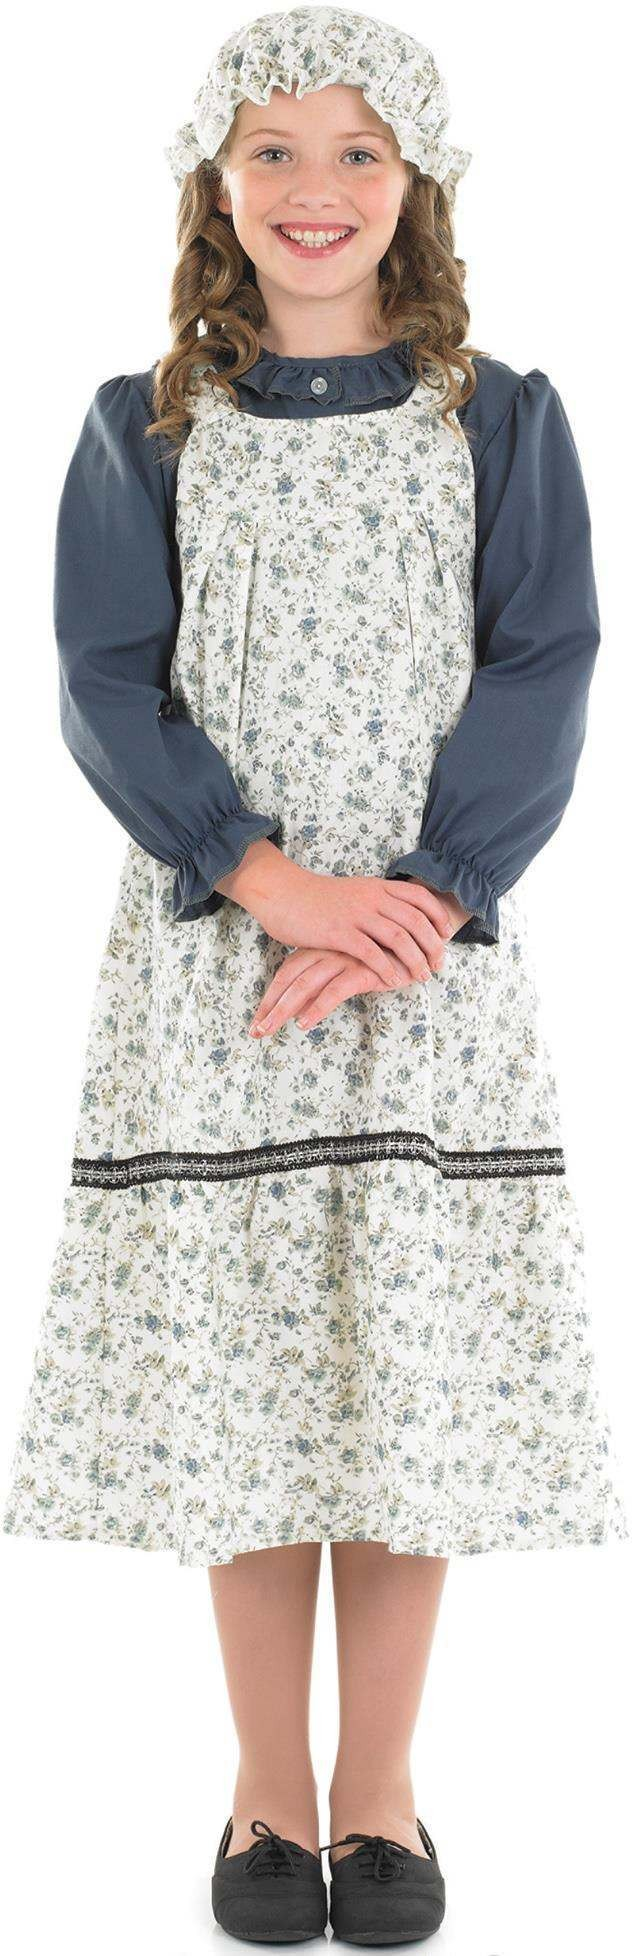 Girls Victorian School Girl Victorian Outfit - (White, Blue)